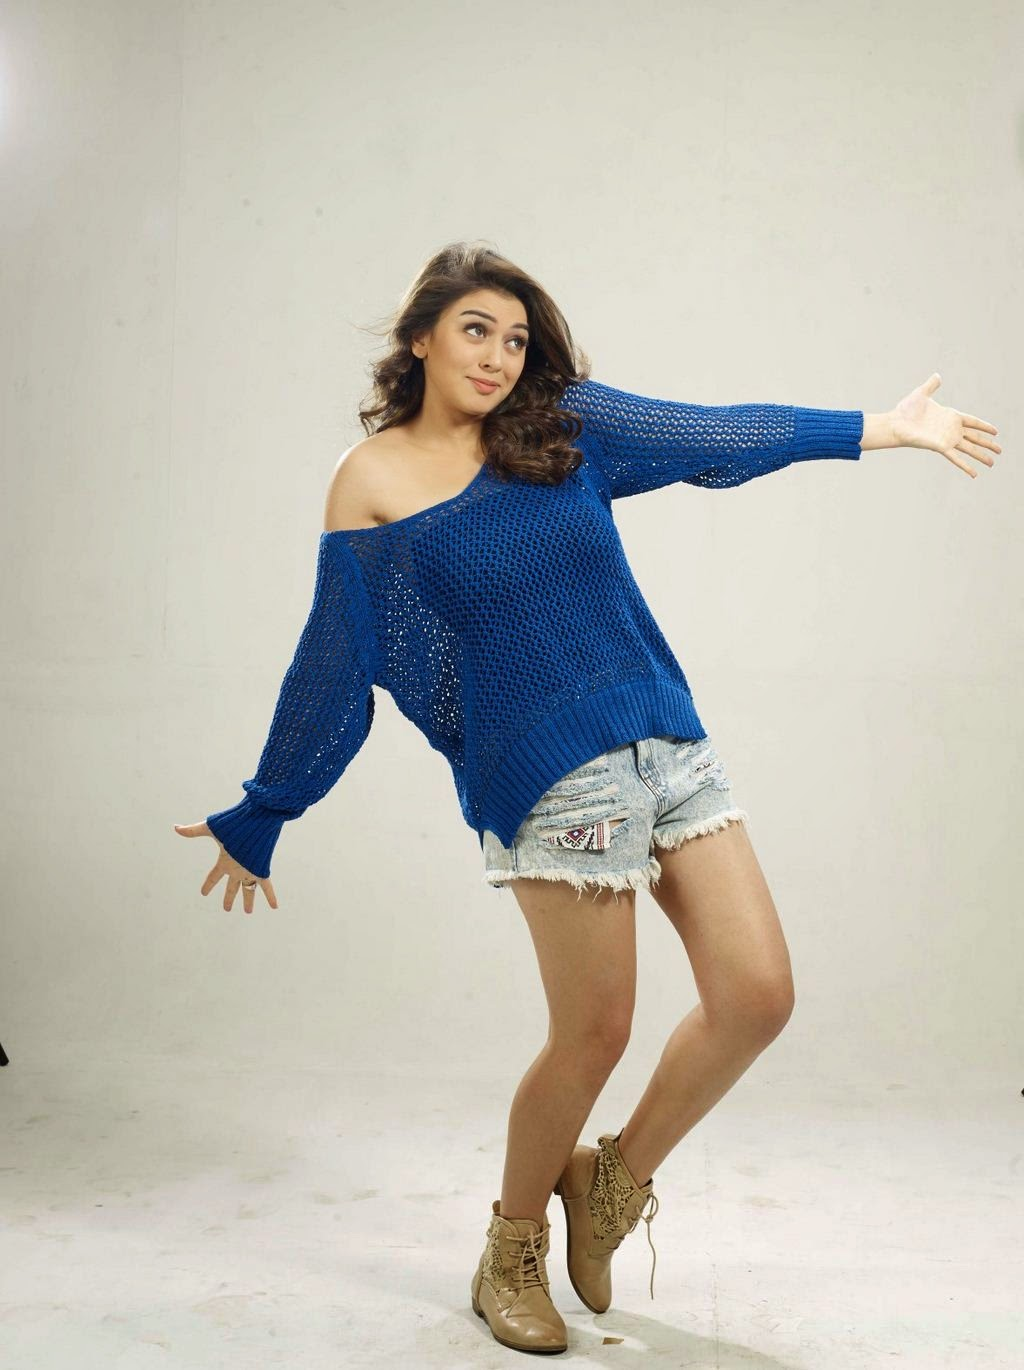 Hansika motwani high quality nude pictures opinion you